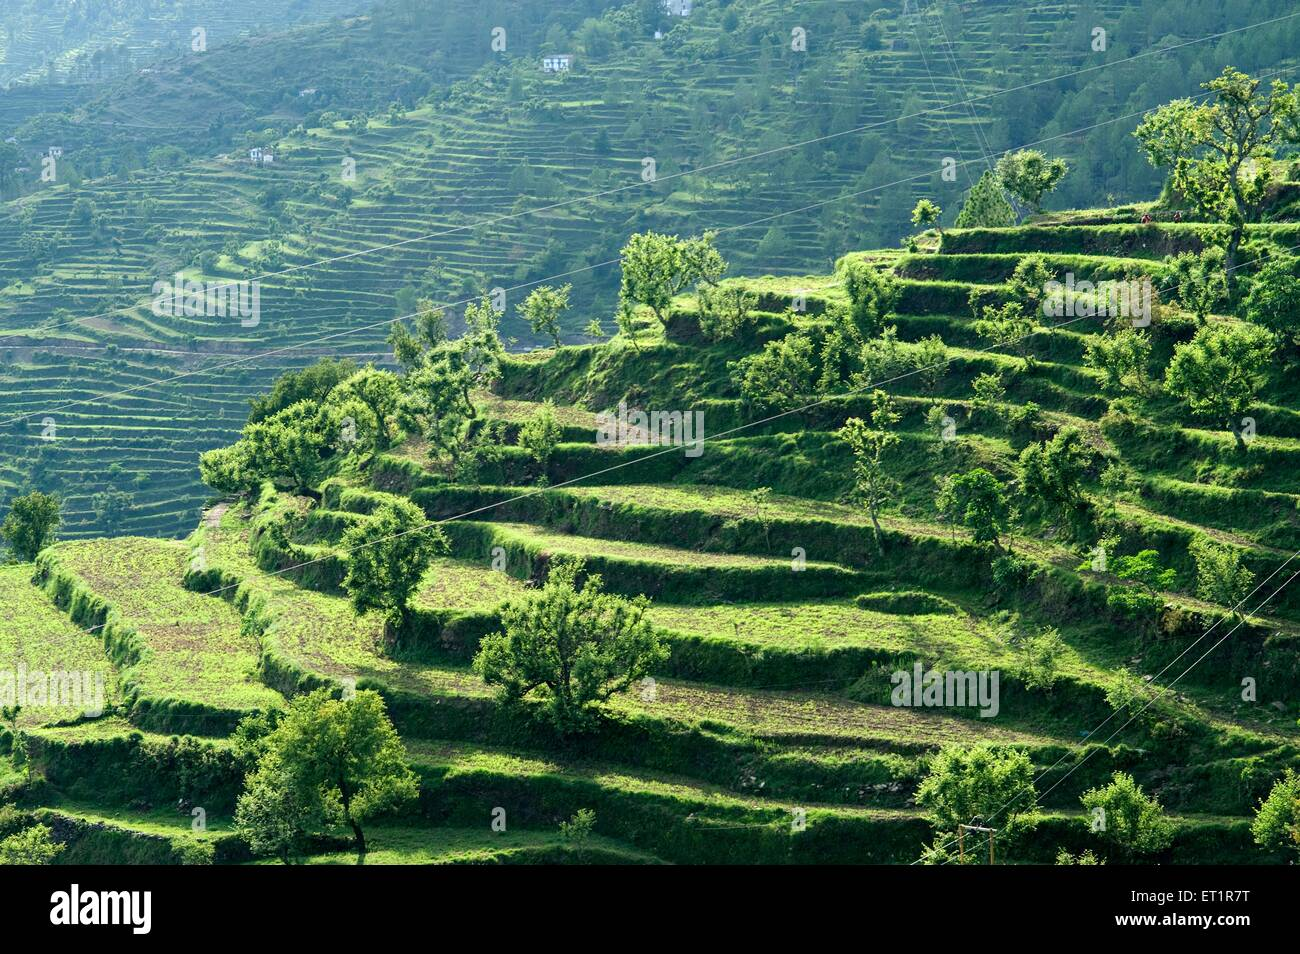 terrace farming in uttarakhand india asia stock photo